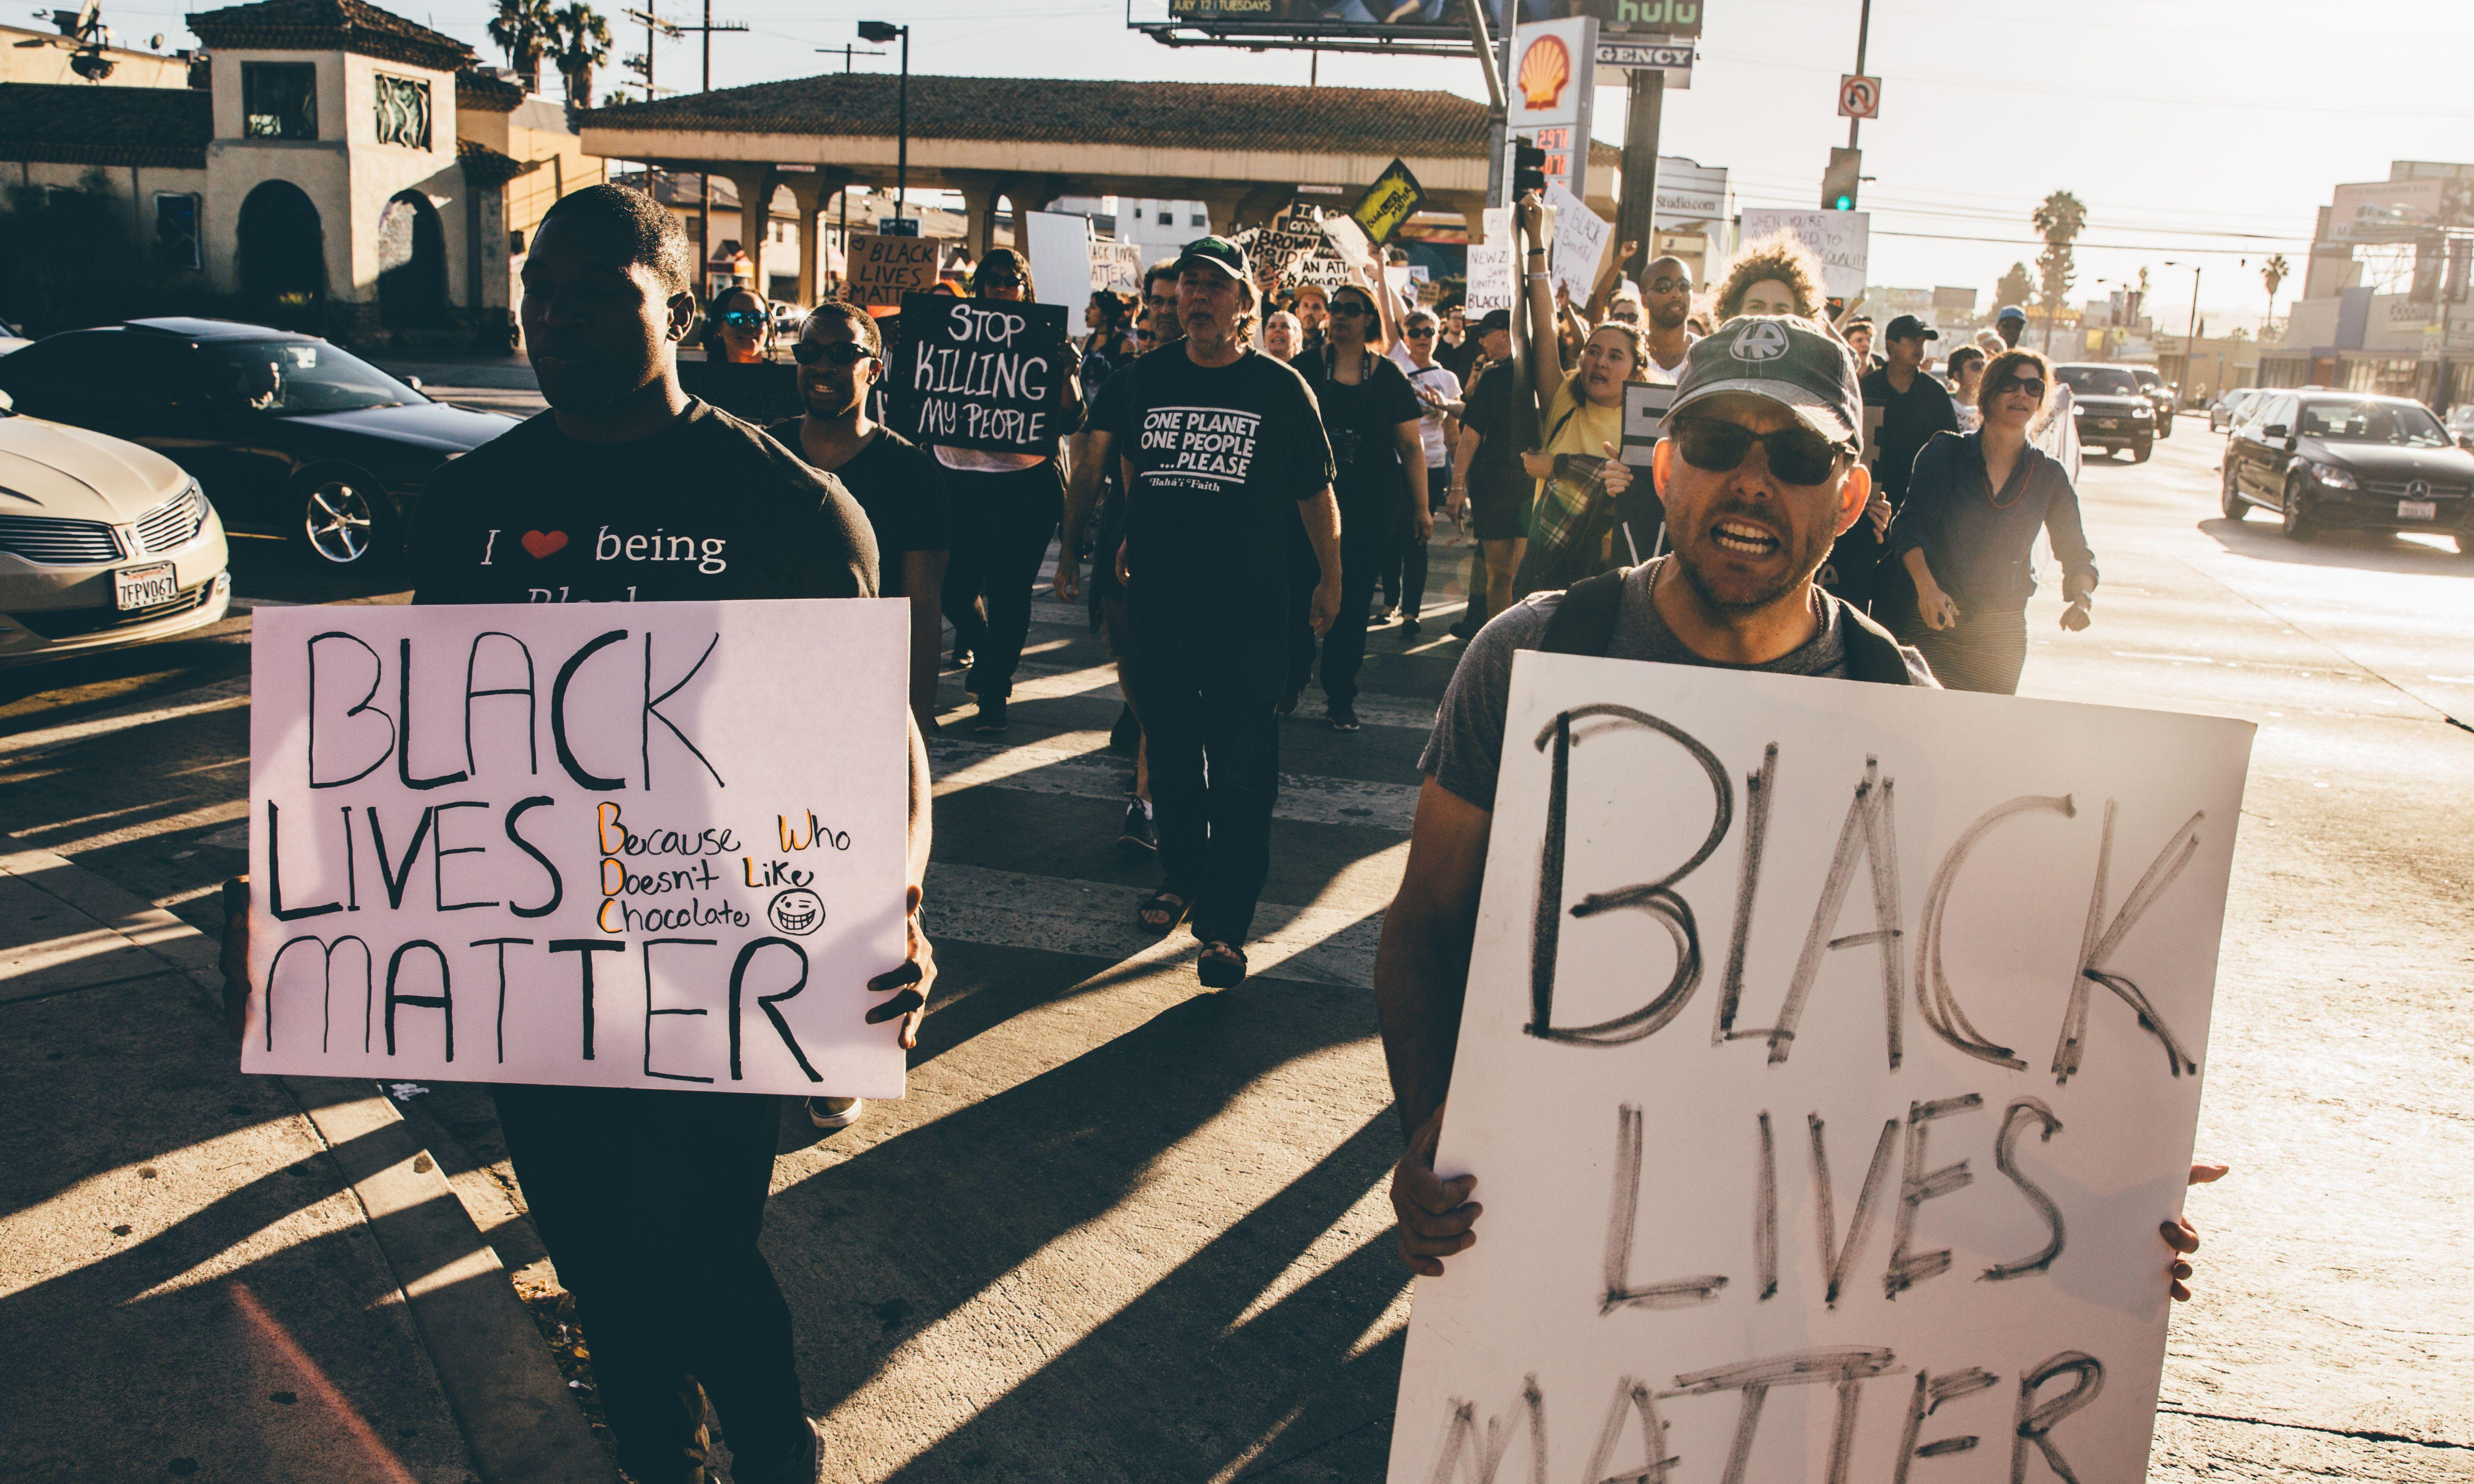 'Good day for a chokehold': the police endorsing racism and violence on Facebook